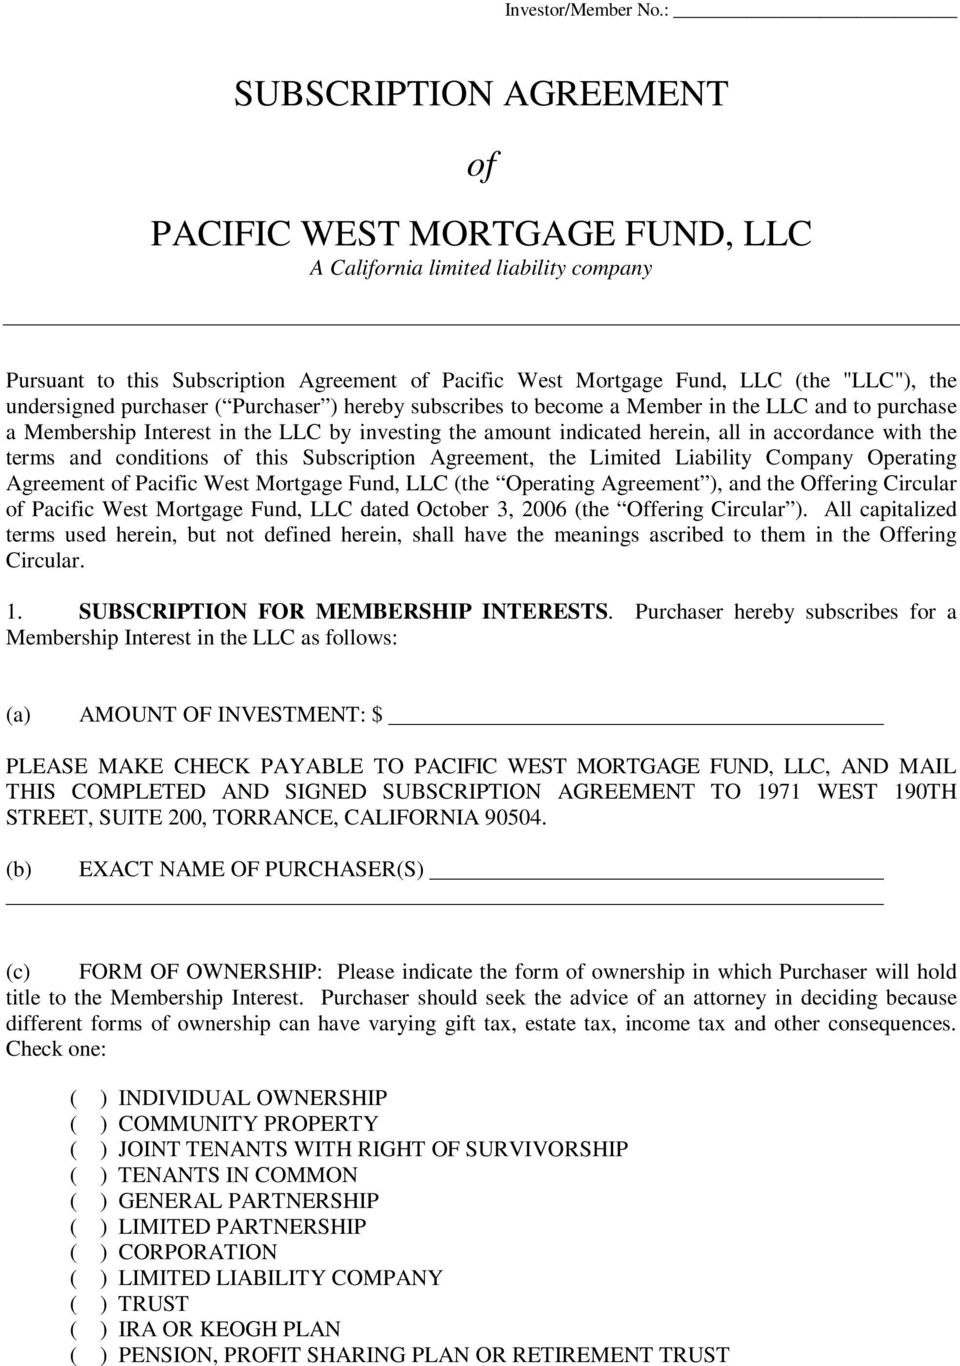 Subscription Agreement Of Pacific West Mortgage Fund Llc A